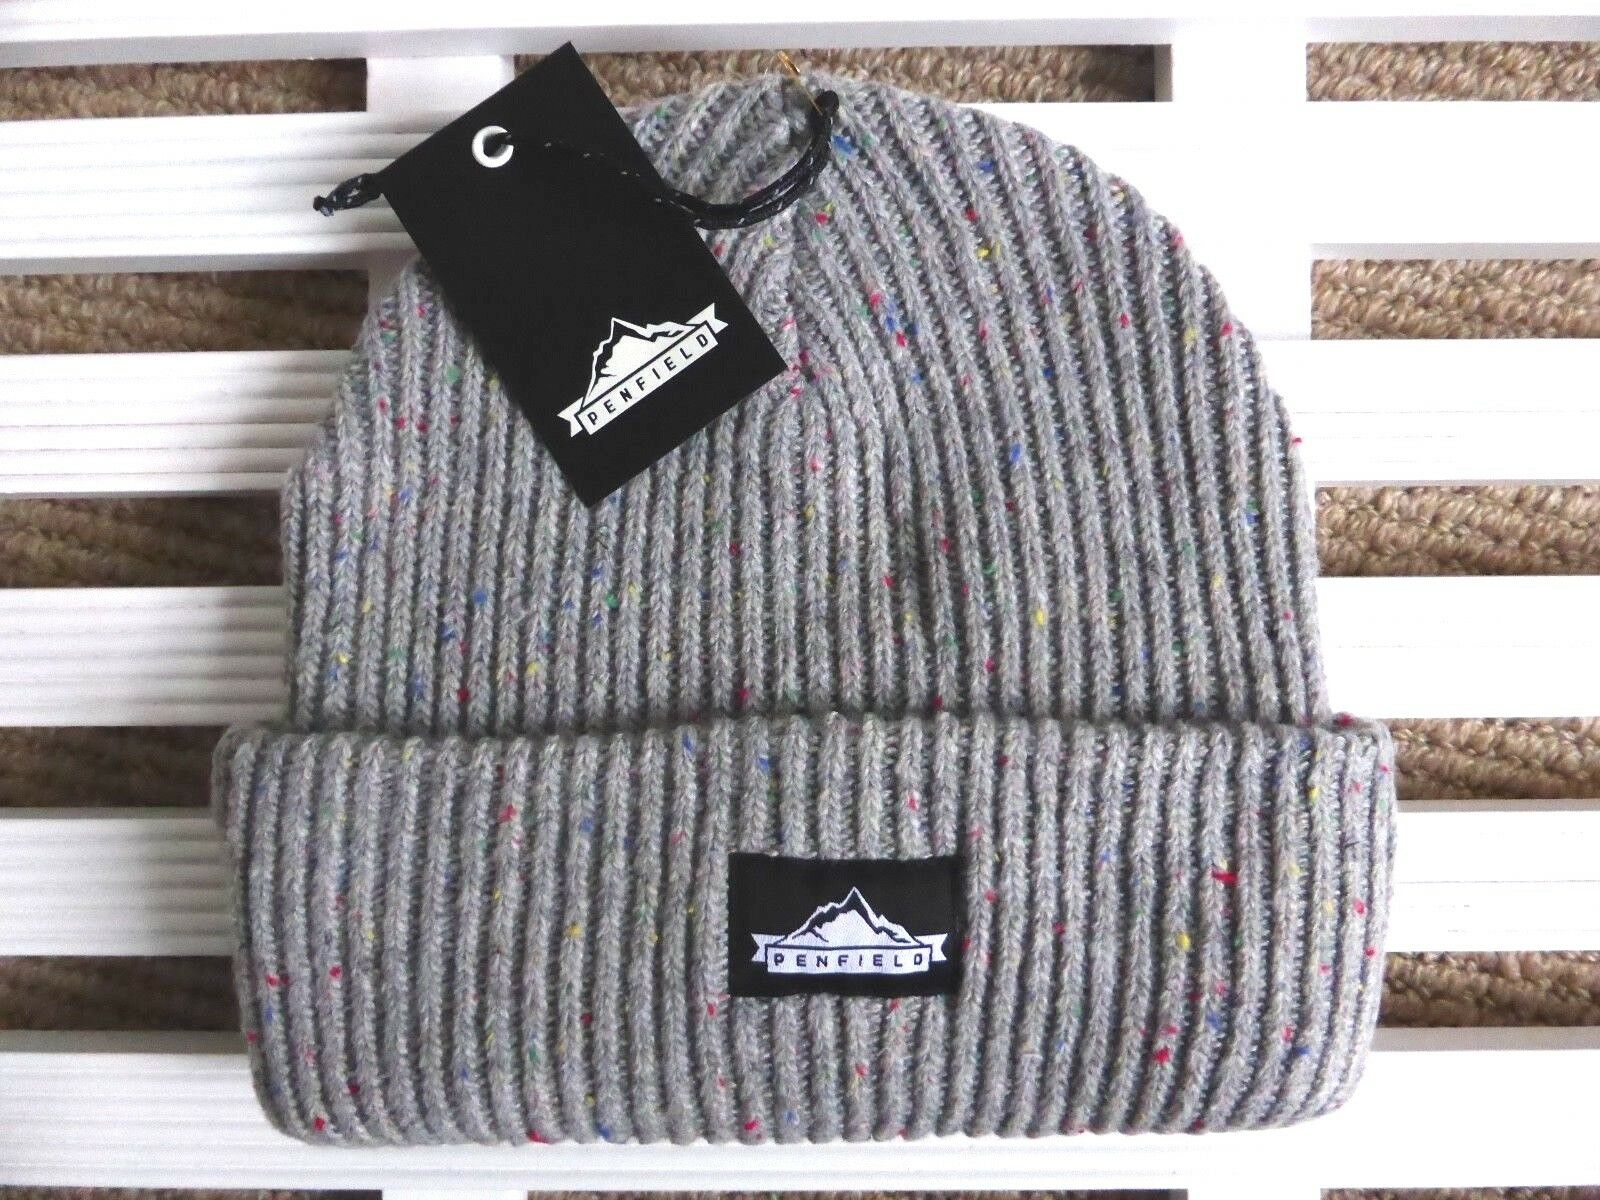 PENFIELD USA Chunky Grey Beanie  Hat - Super Comfy & Warm - One Size - Toque NEW  fitness retailer